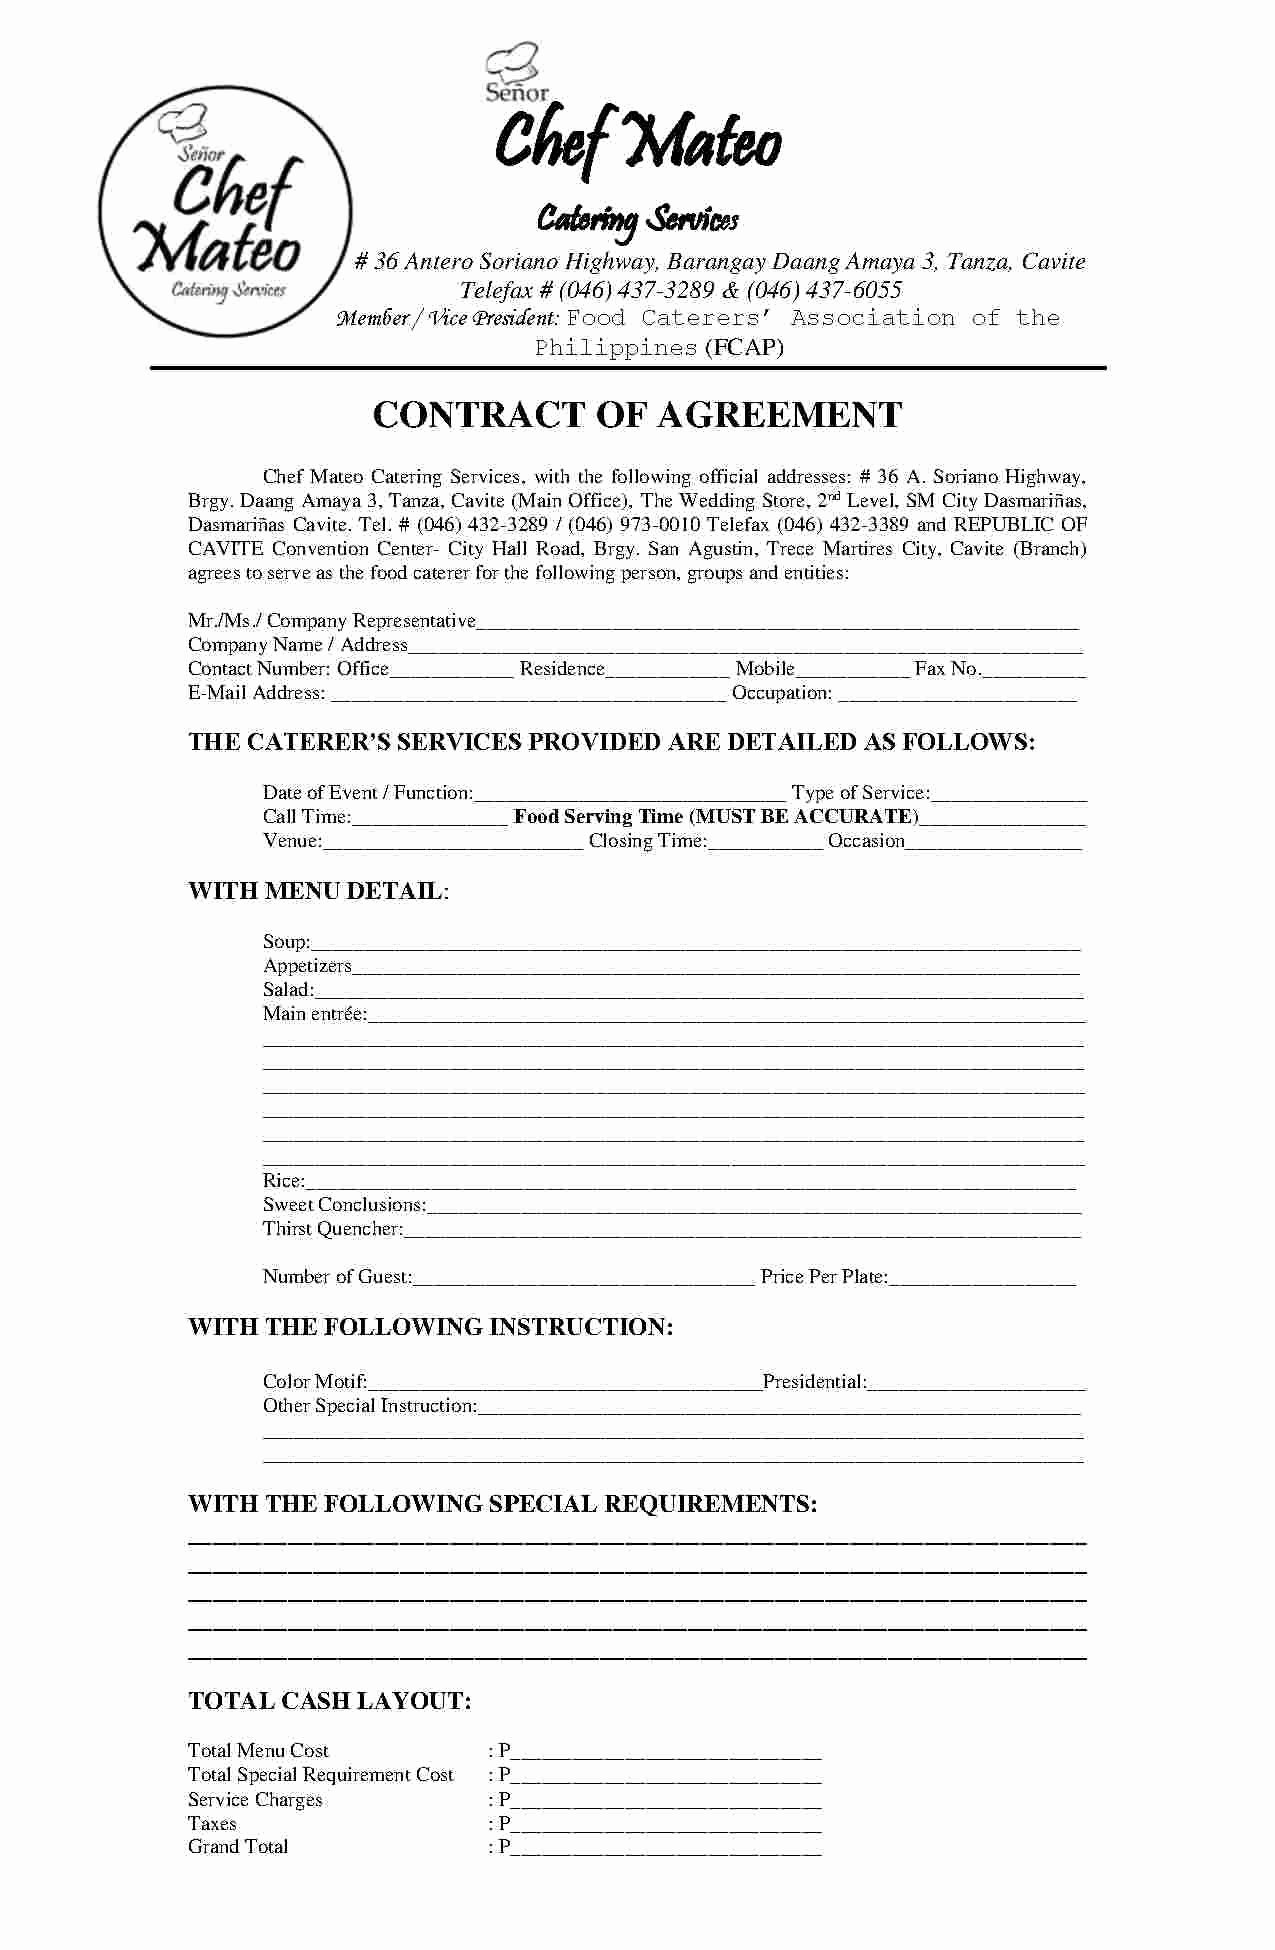 Catering Contracts Template Free Fresh Download Catering Contract Style 5 Template for Free at